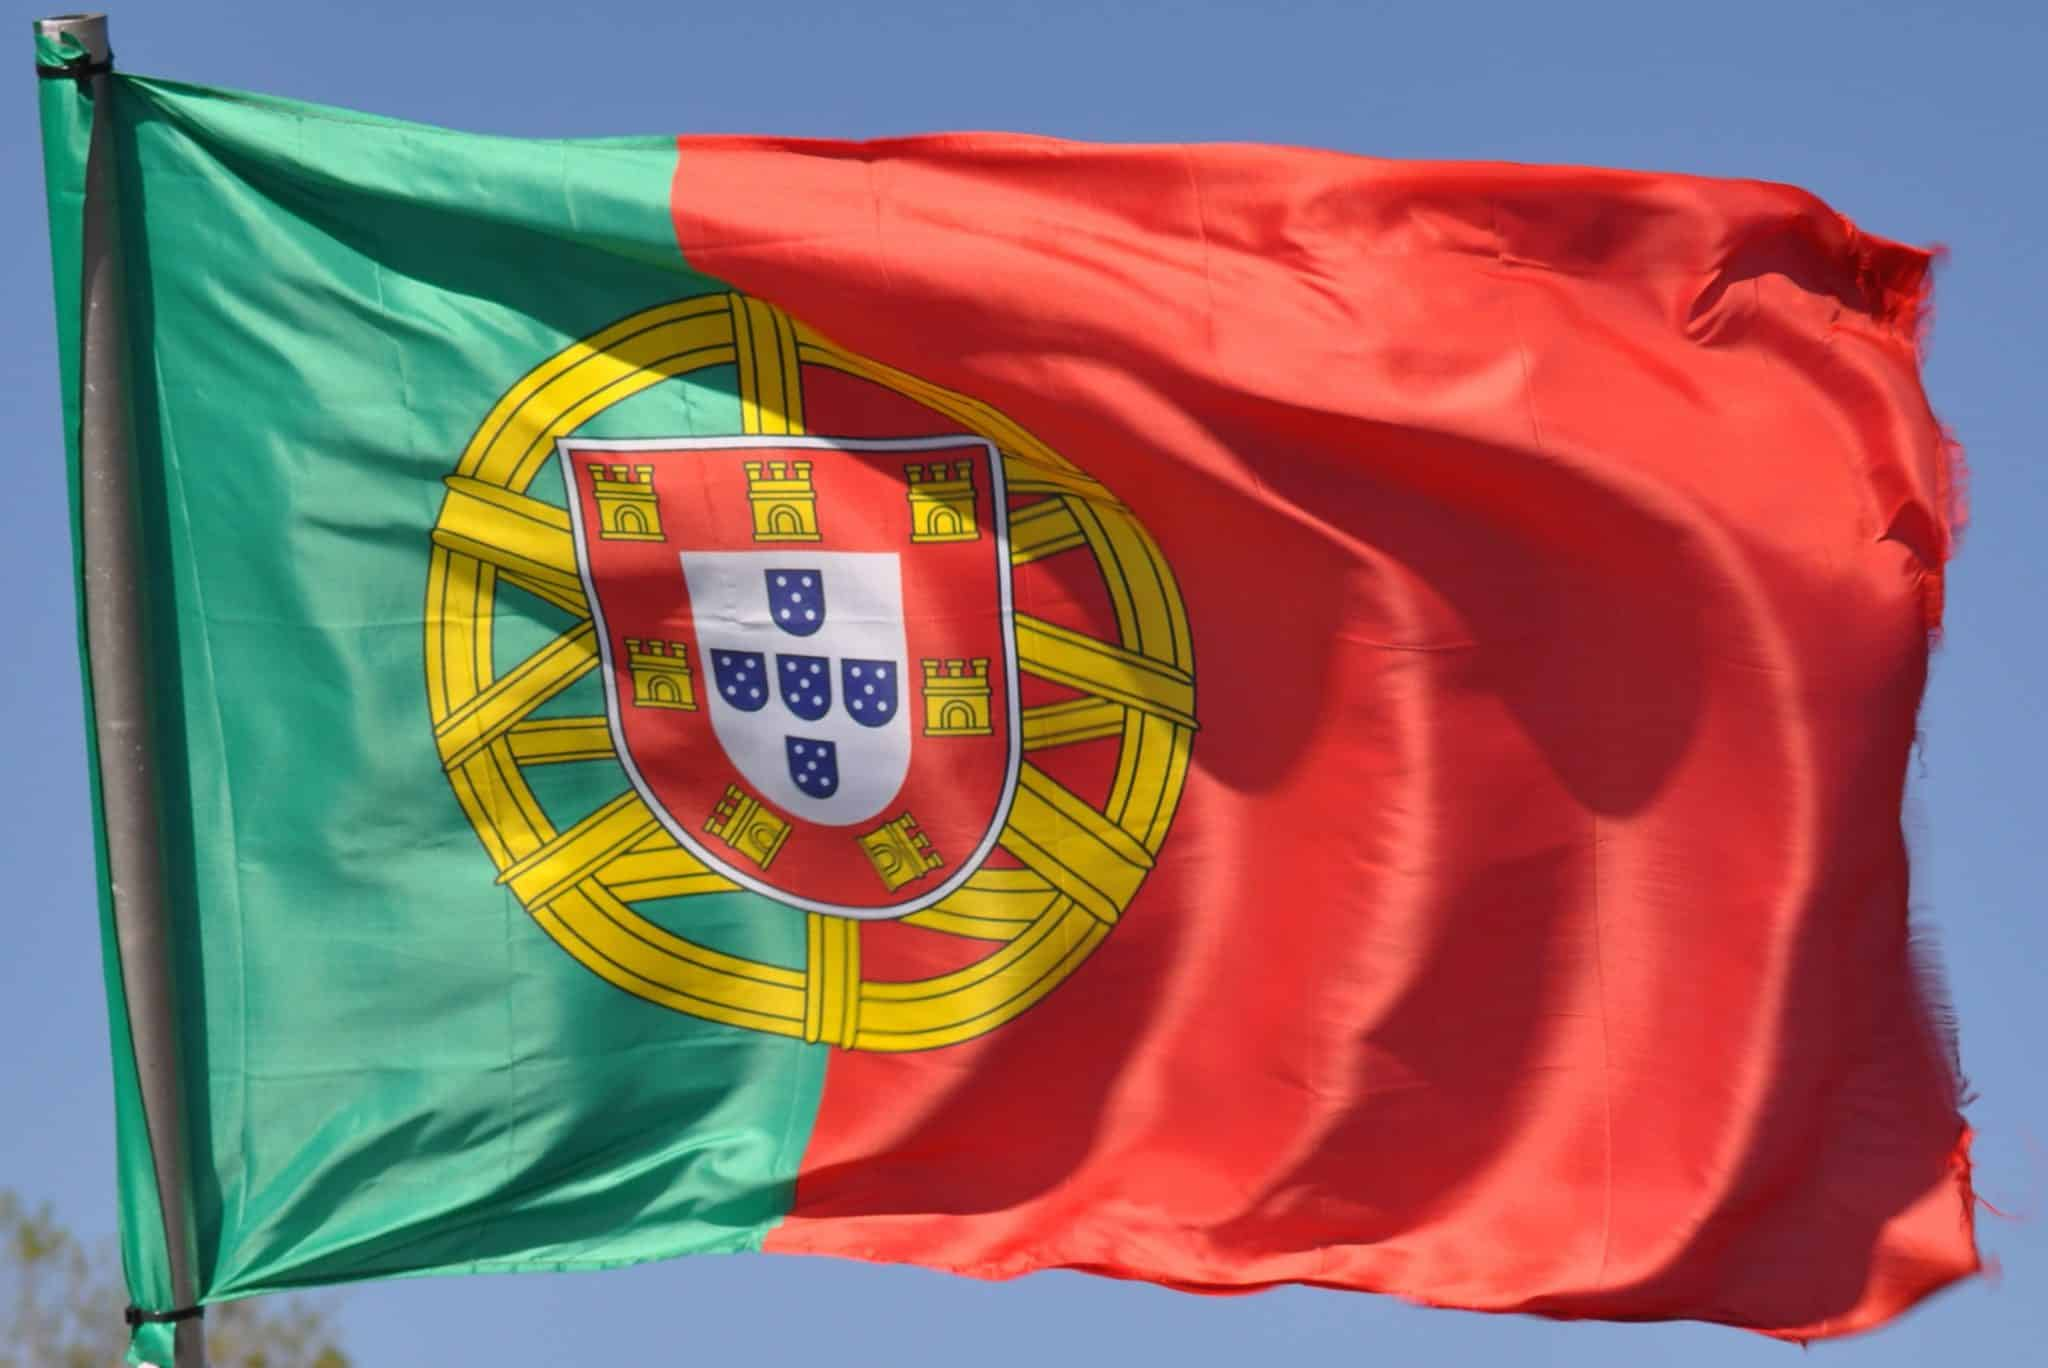 Portugal has to walk a long road to reach economic recovery